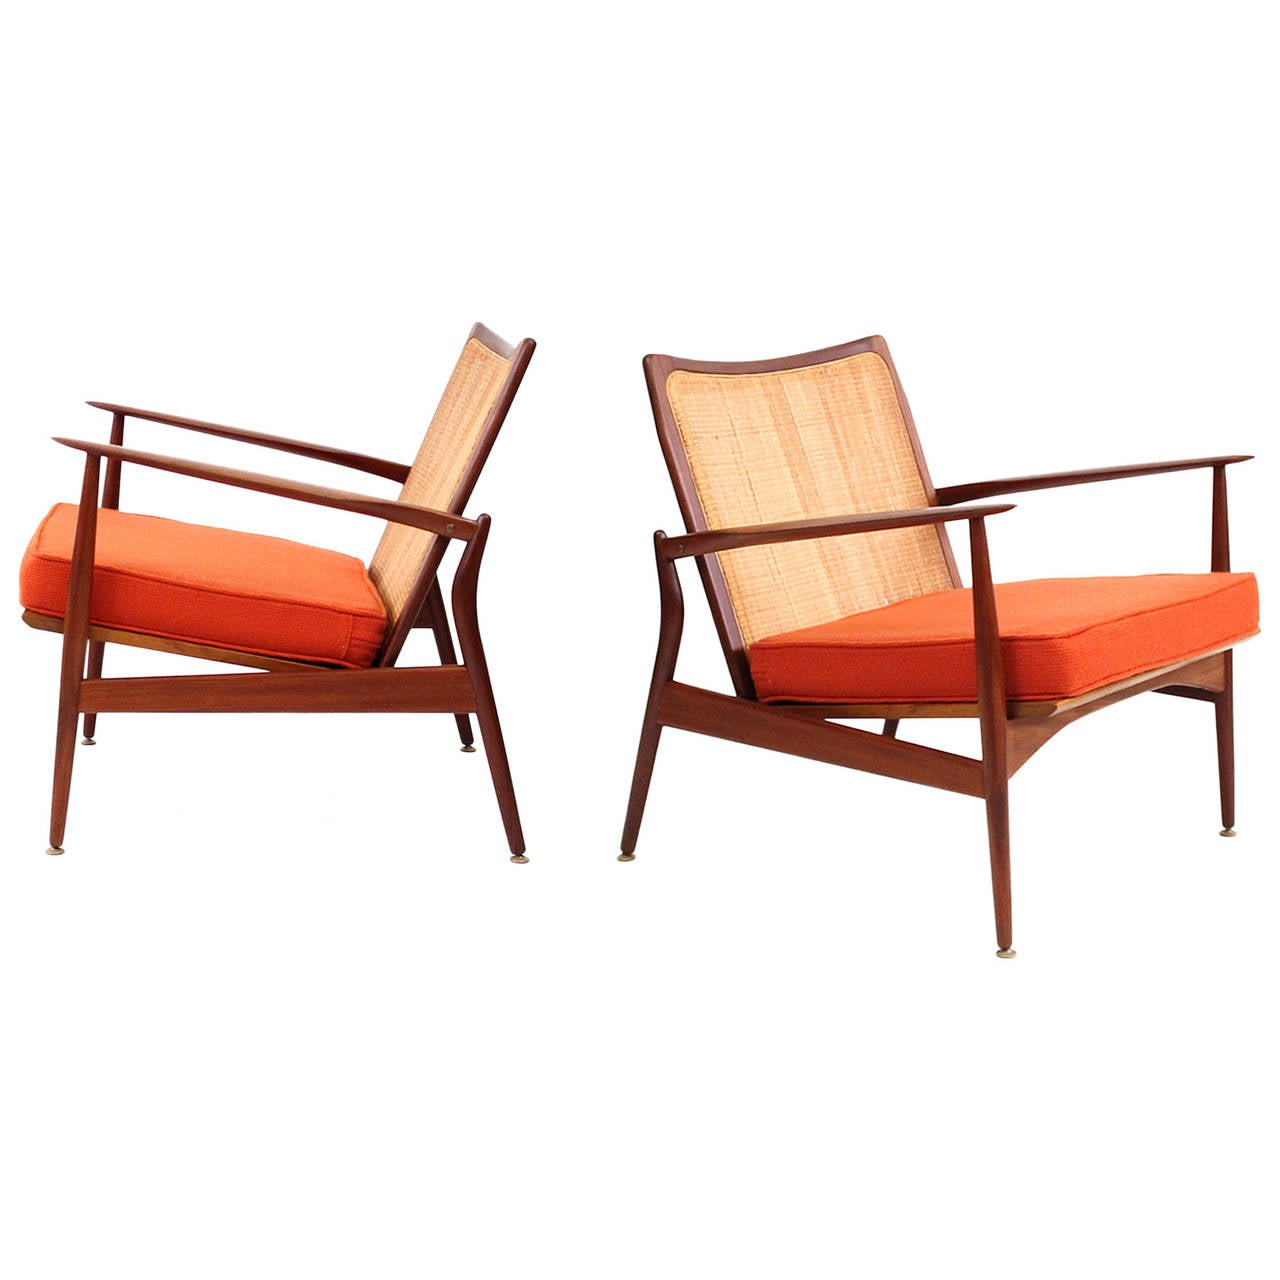 This sculptural pair of lounge chairs by ib kofod larsen is no longer - Ib Kofod Larsen Spear Arm Chairs 1